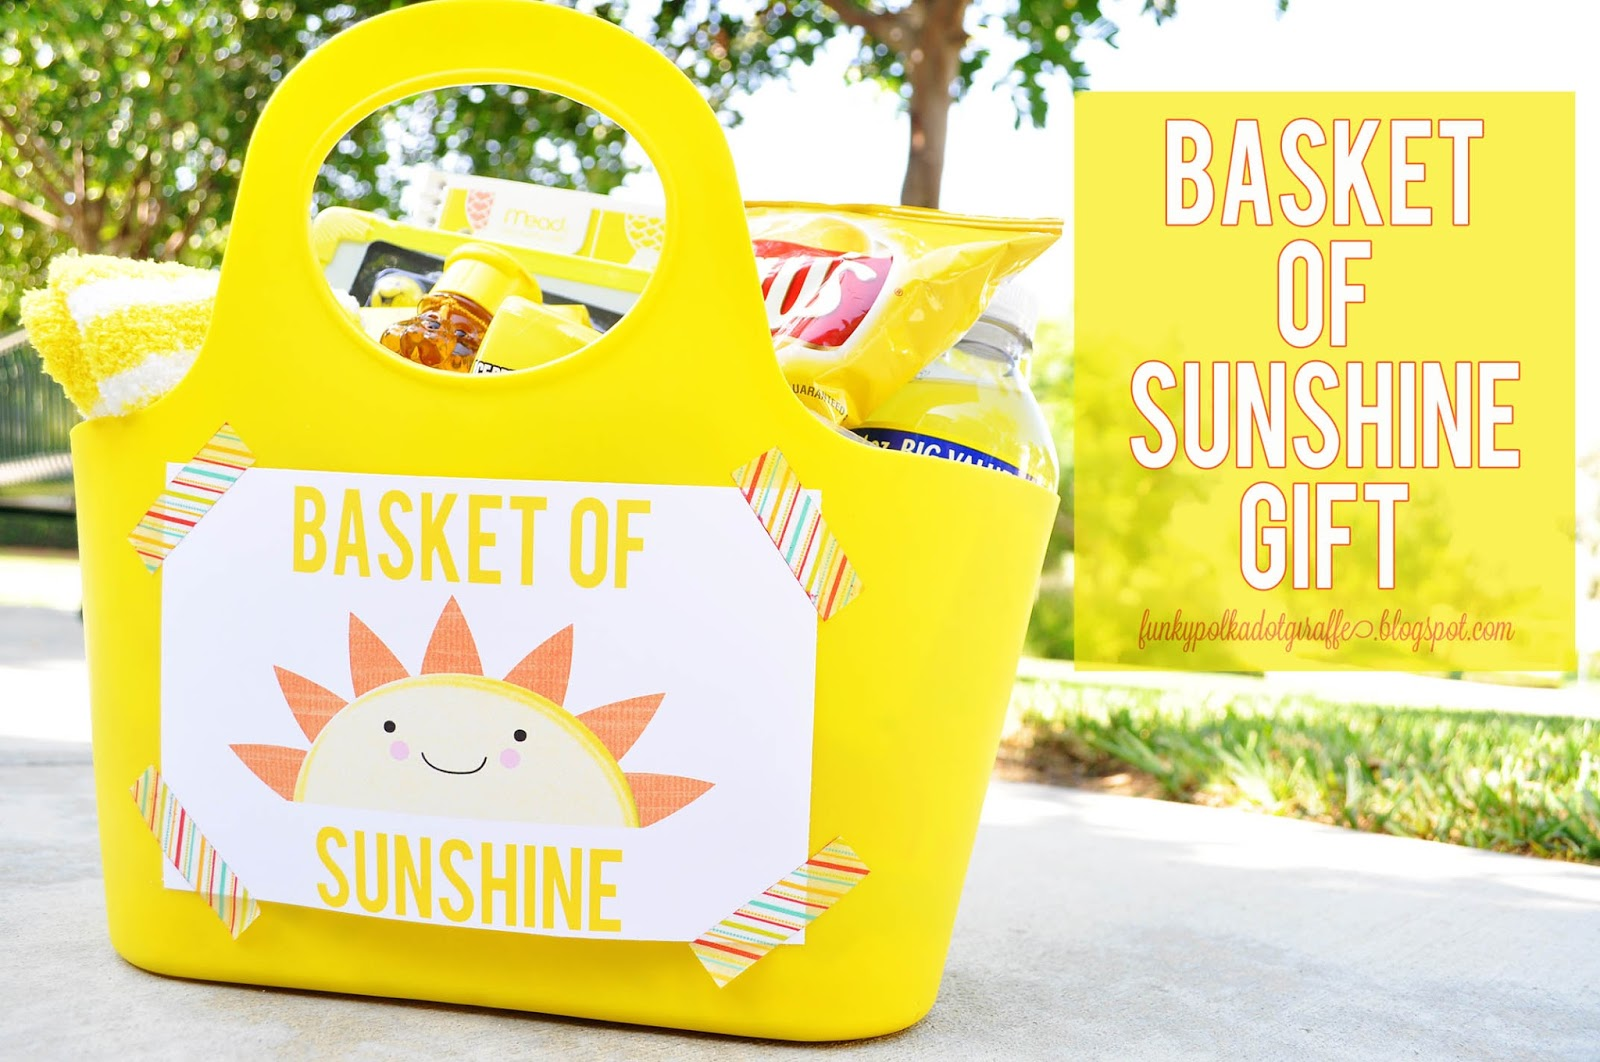 graphic about Basket of Sunshine Printable named Funky Polkadot Giraffe: Basket of Solar Reward with Printables